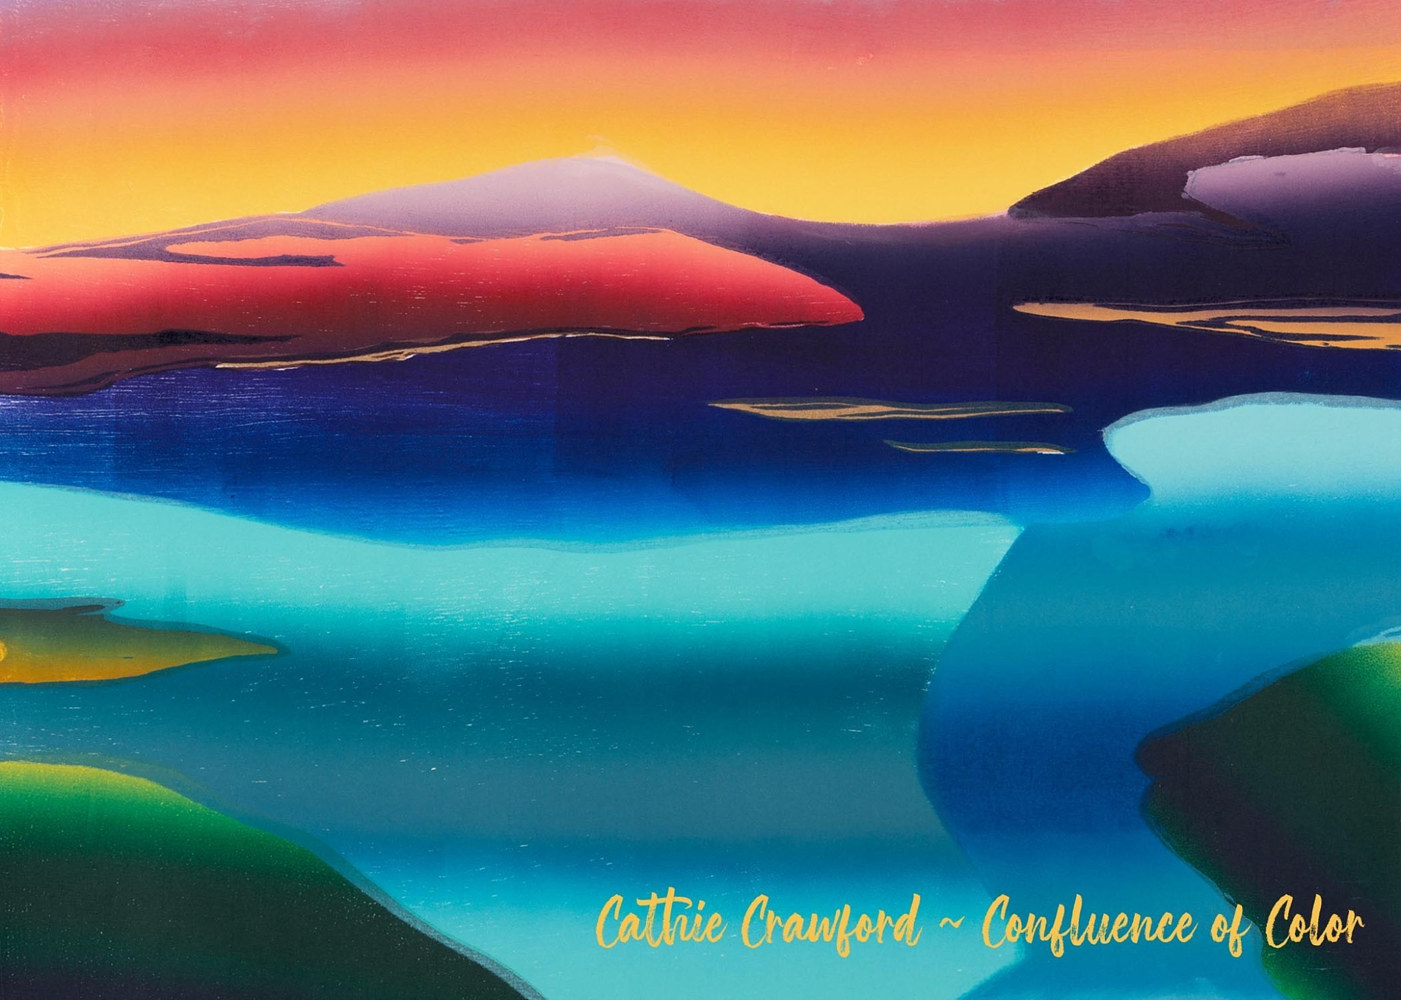 CONFLUENCE OF COLOR by Cathie Crawford